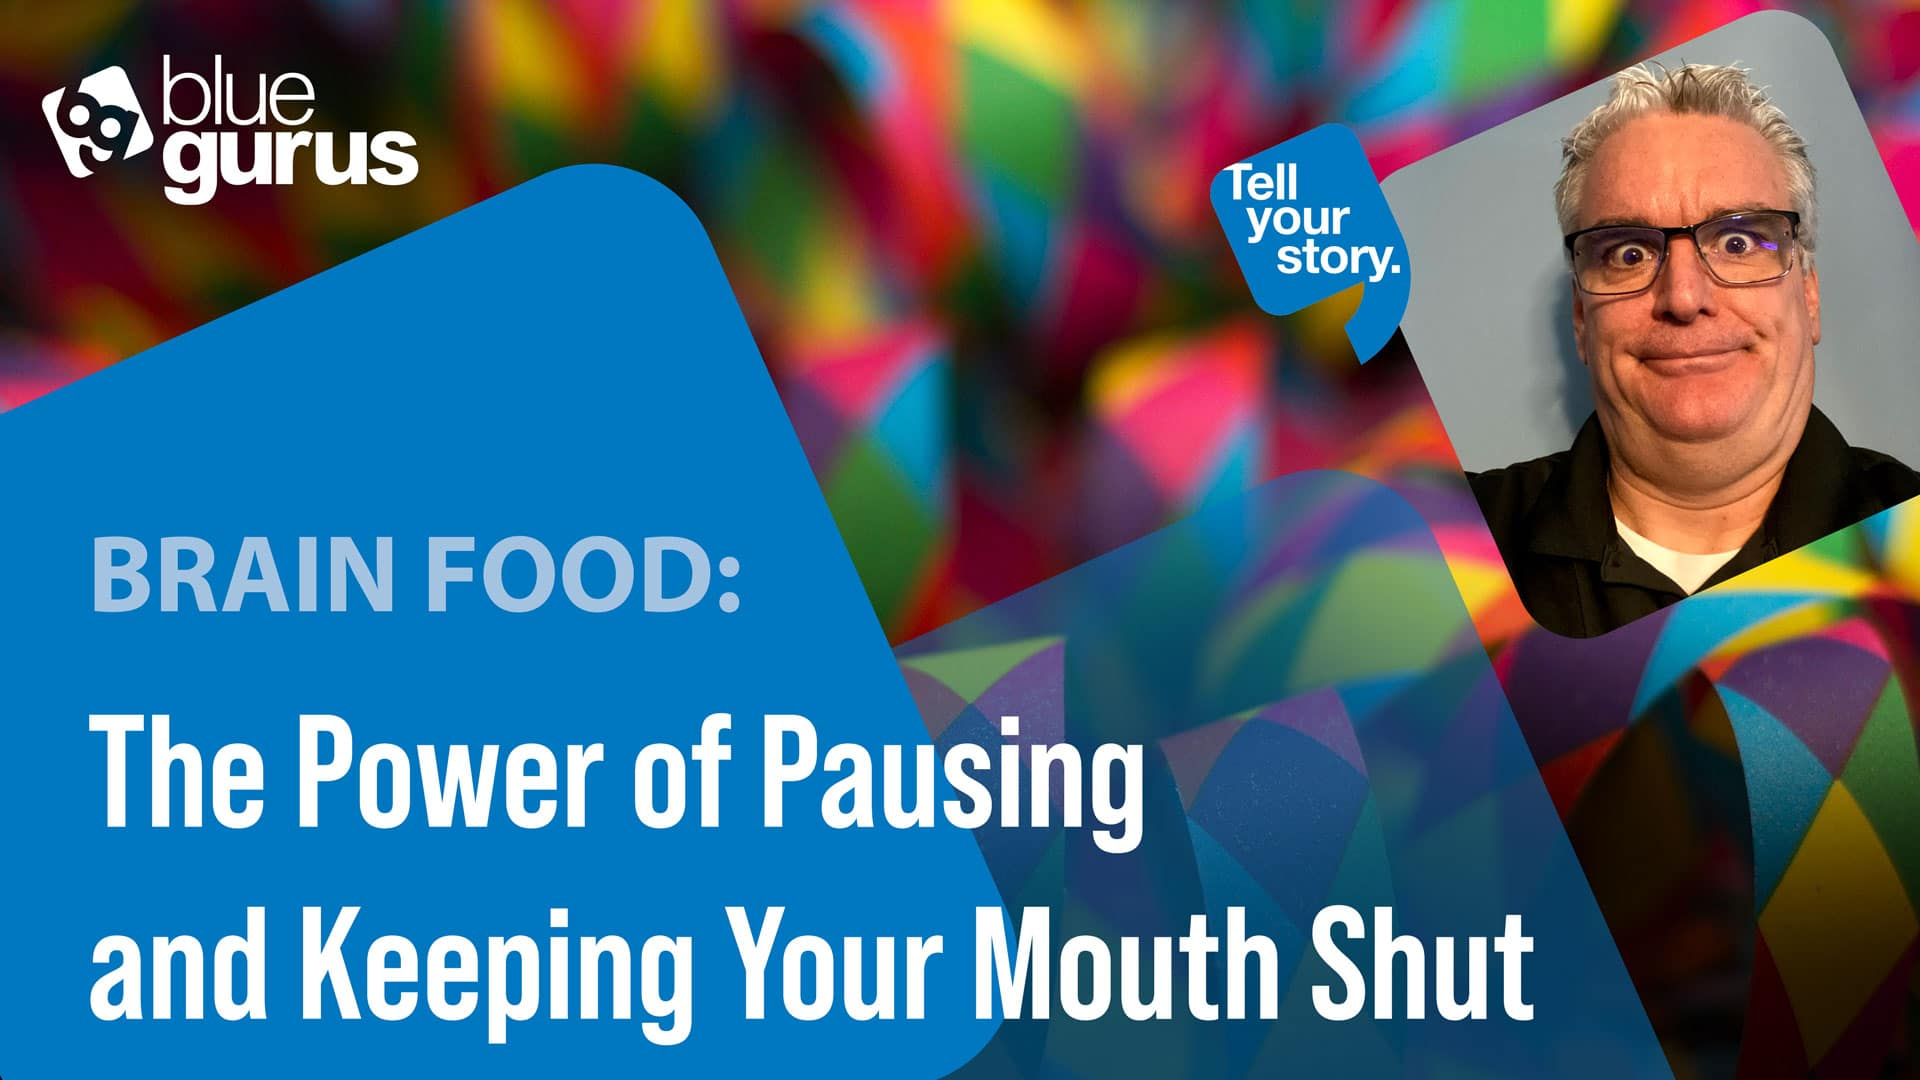 The Power of Pausing and Keeping Your Mouth Shut